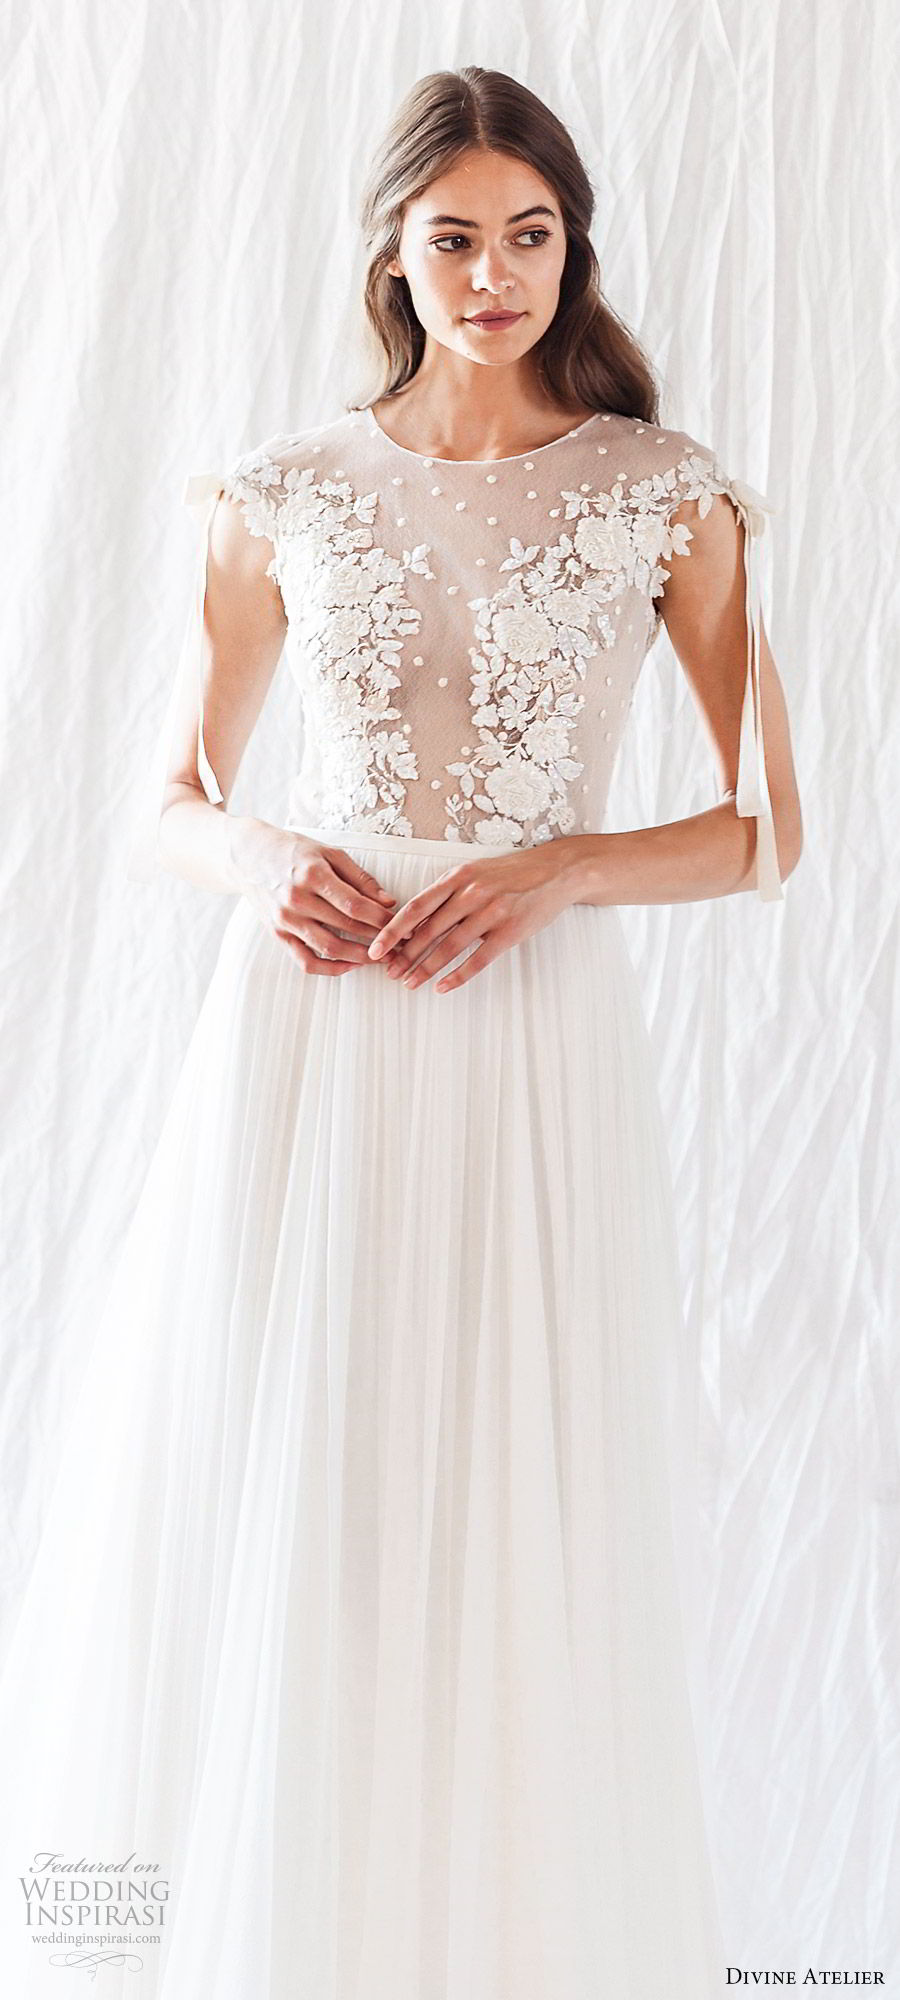 divine atelier 2019 bridal cap sleeves illusion jewel neck sheer lace bodice soft a line wedding dress (17) romantic elegant whimsical mv